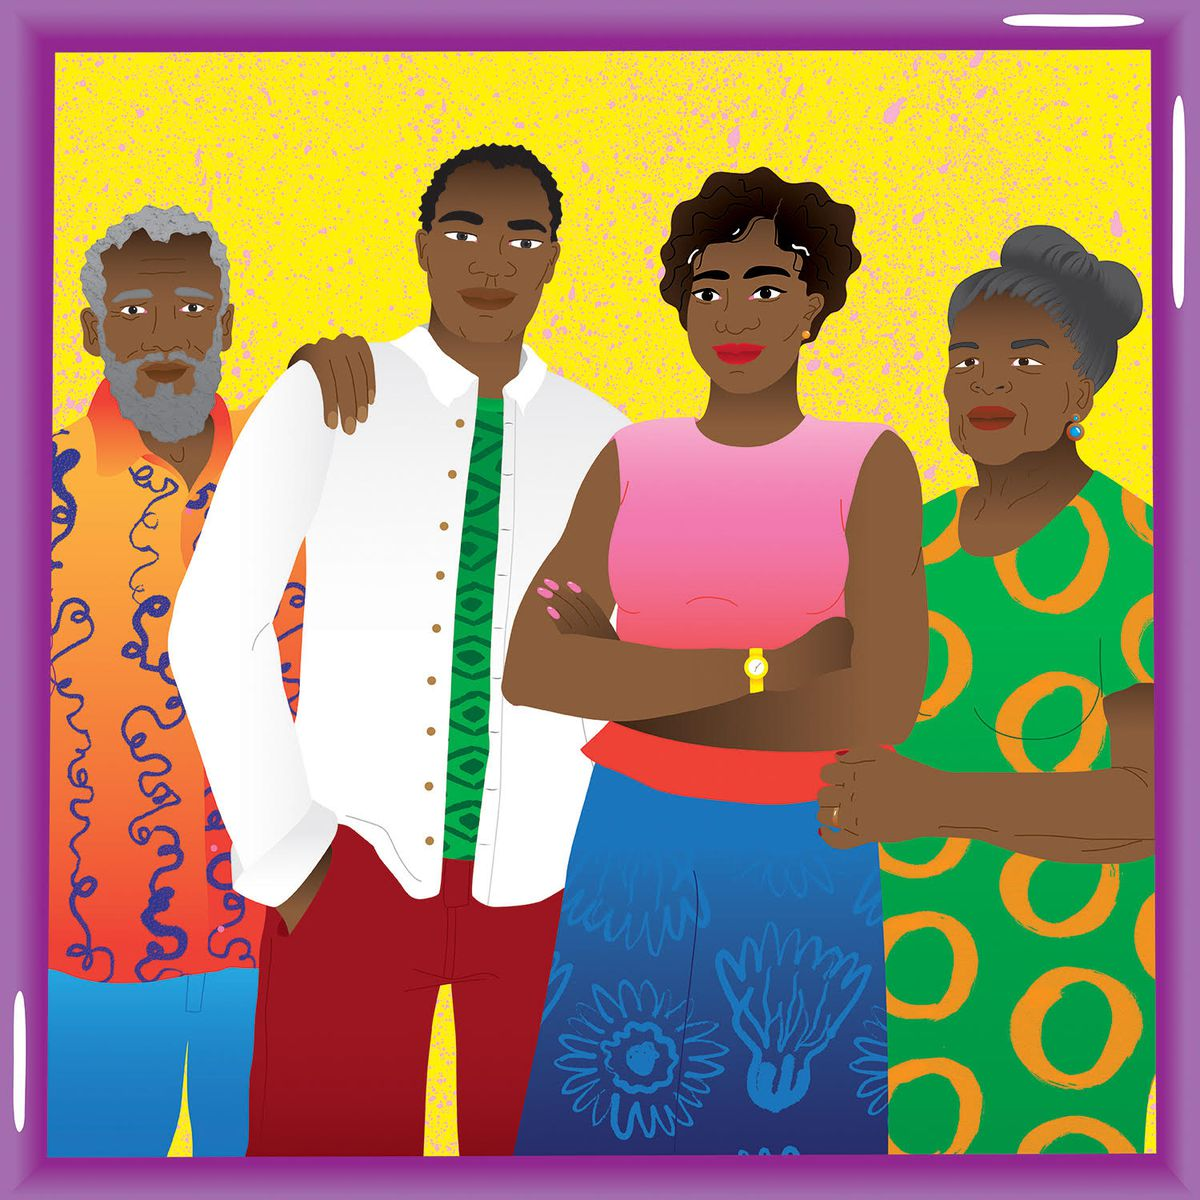 A drawing of a portrait of a Black family with two adult children and their parents.